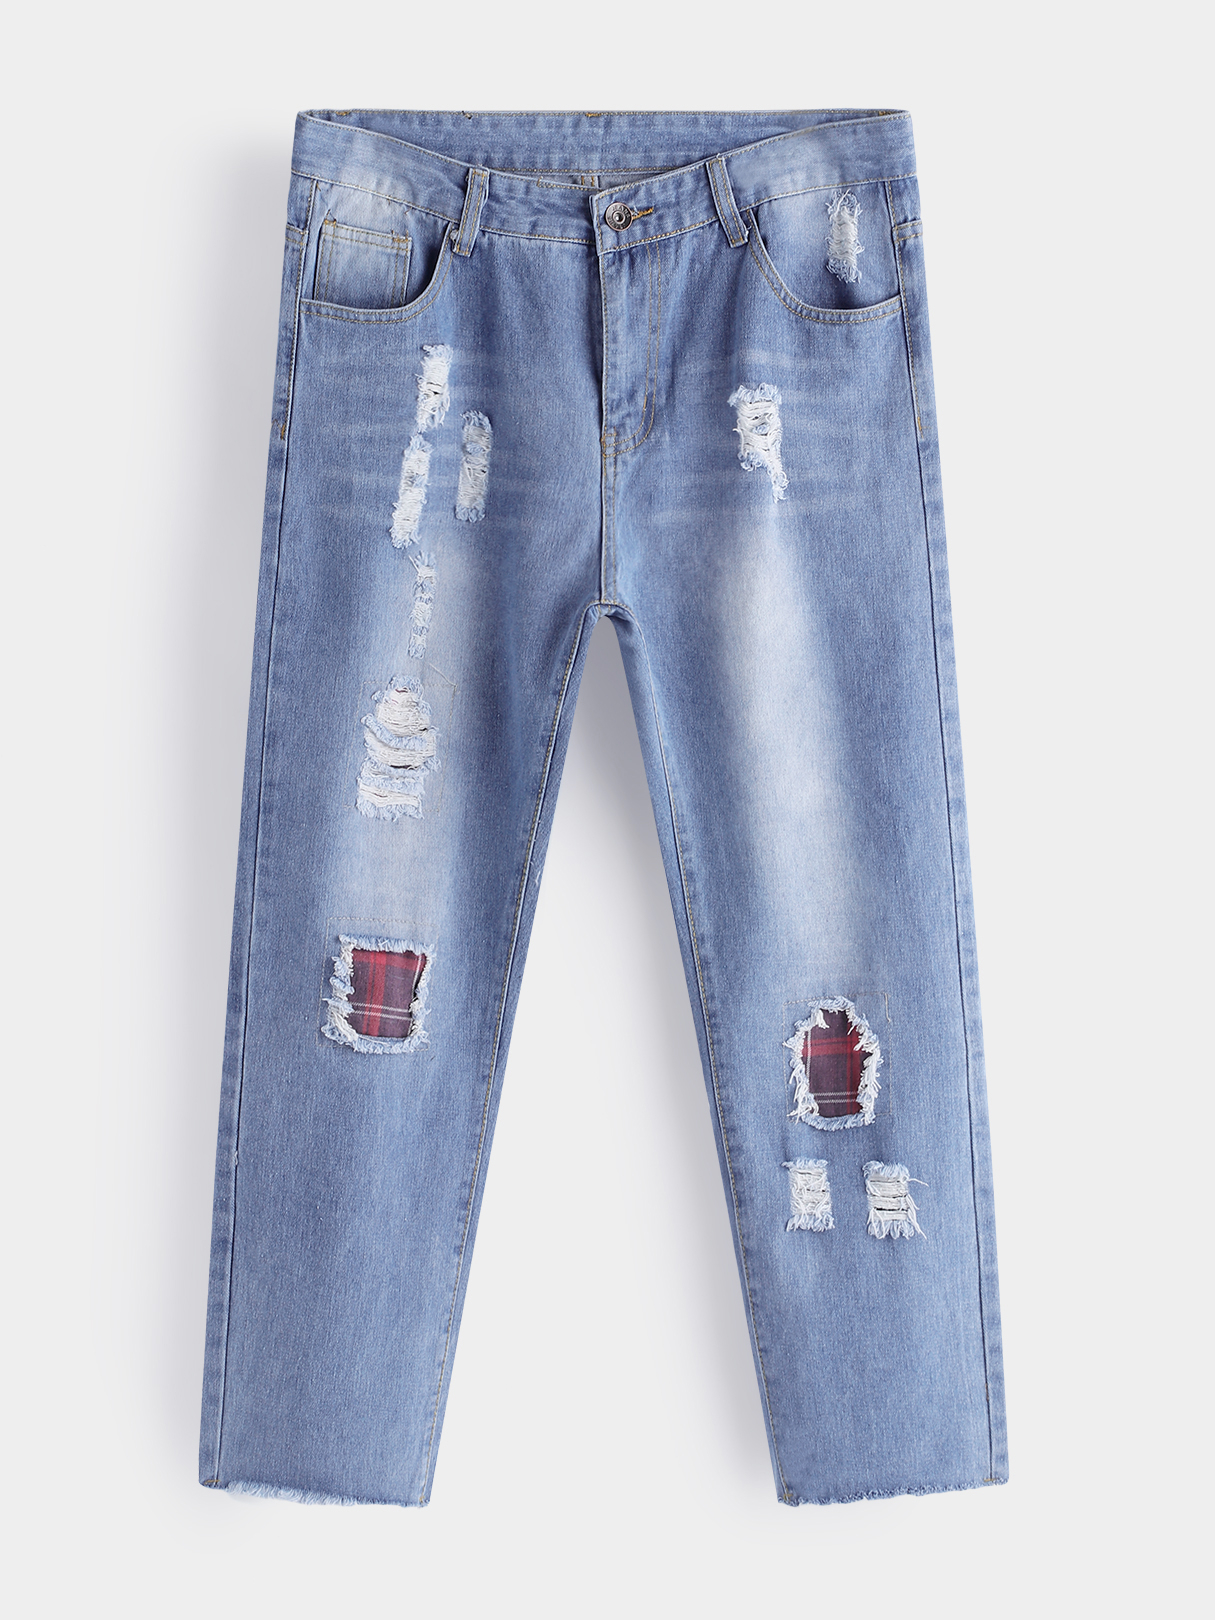 Light Blue Patch Ripped Acid Wash Middle Waist Men's Cropped Jeans SKU983851